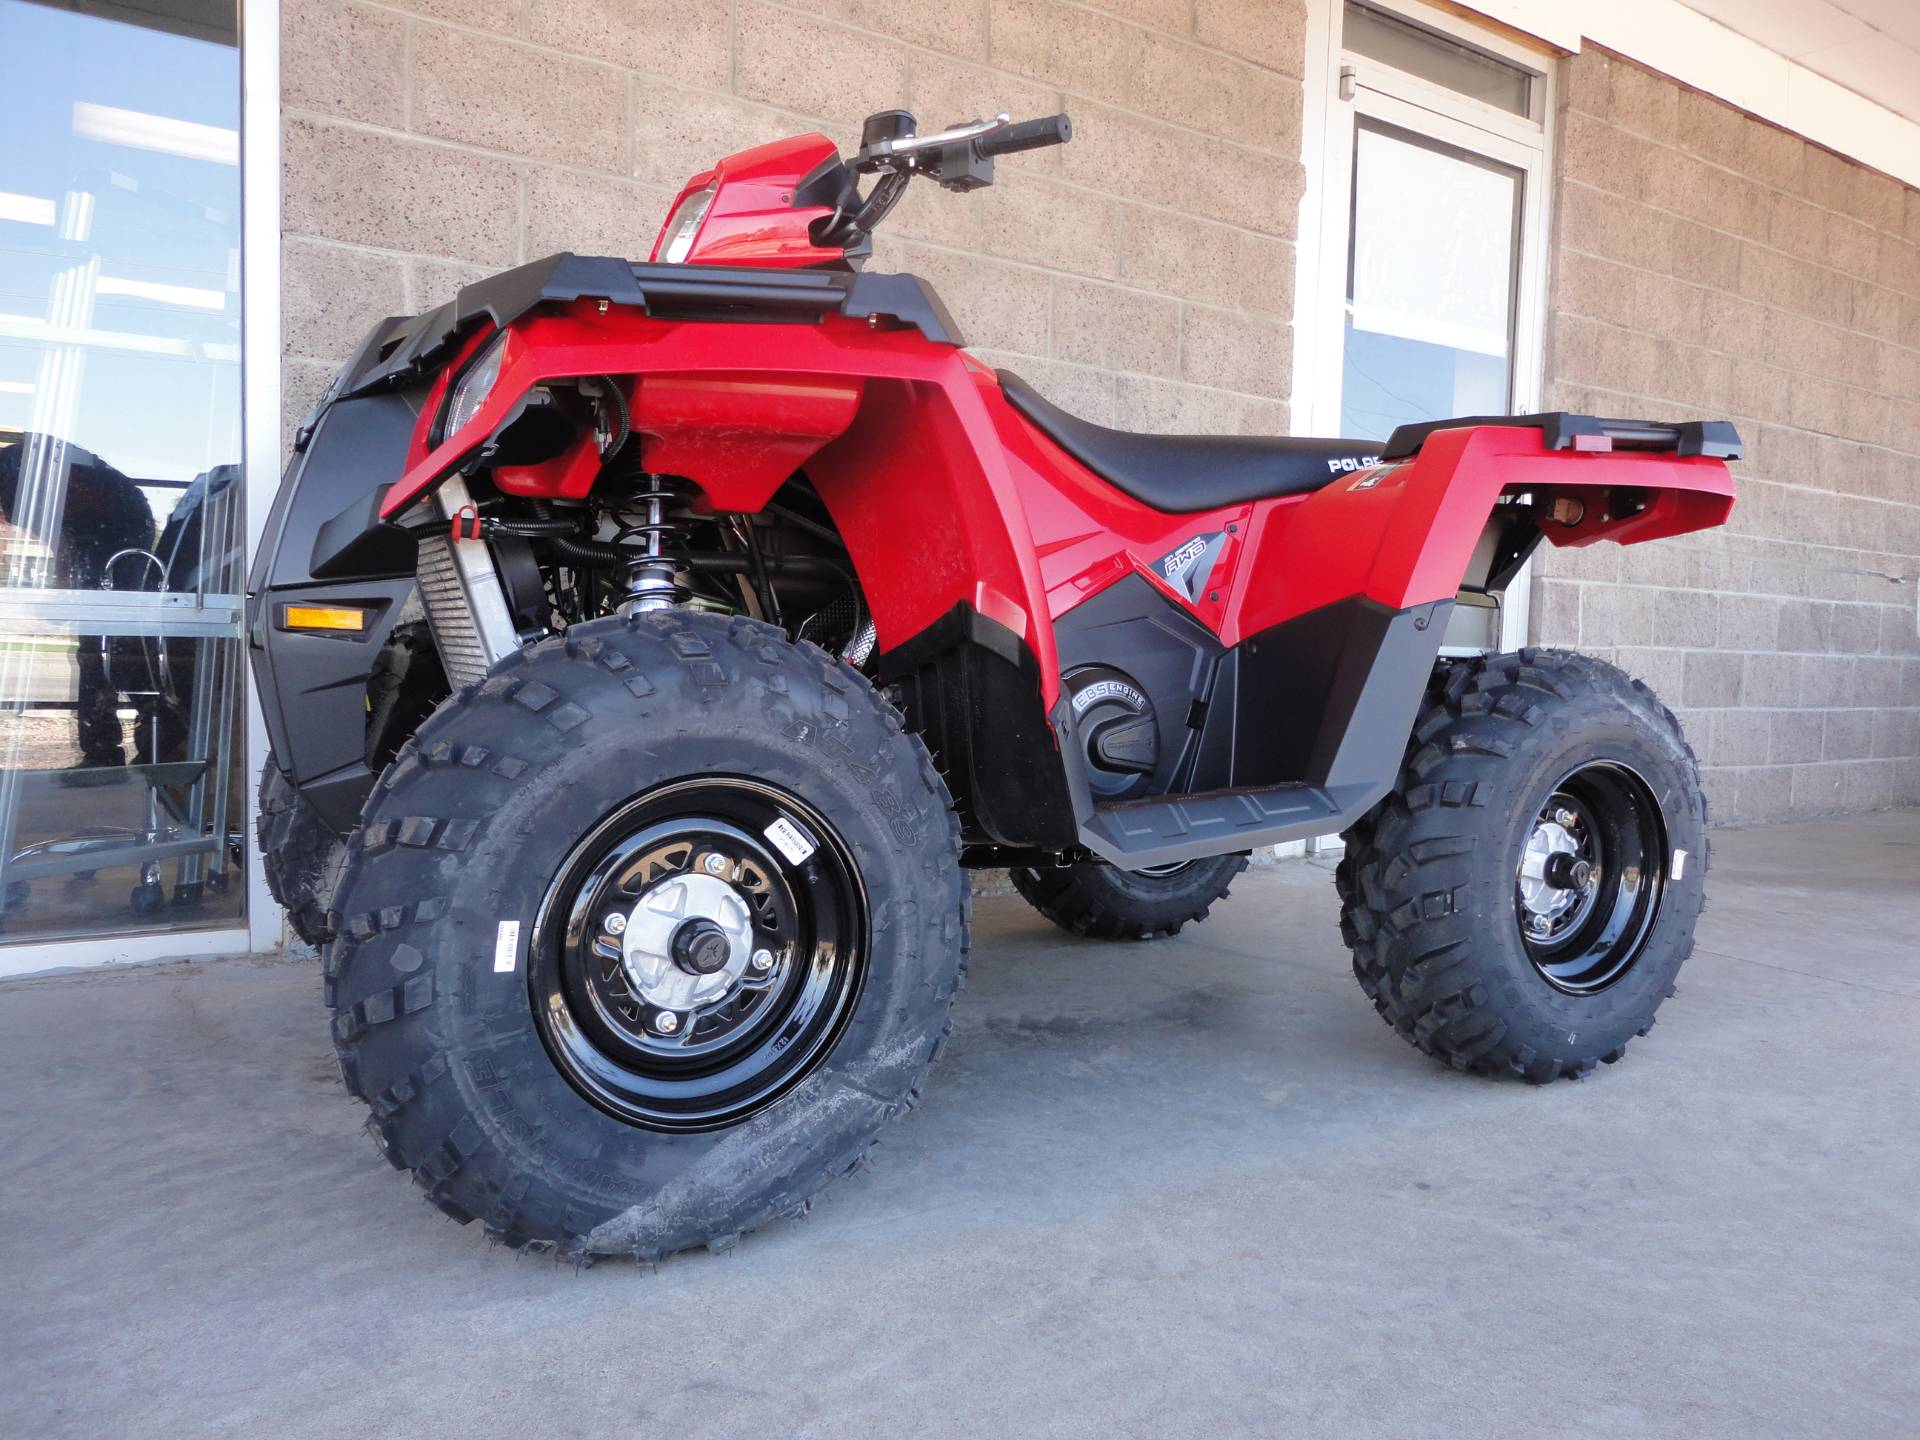 2020 Polaris Sportsman 570 EPS in Denver, Colorado - Photo 21